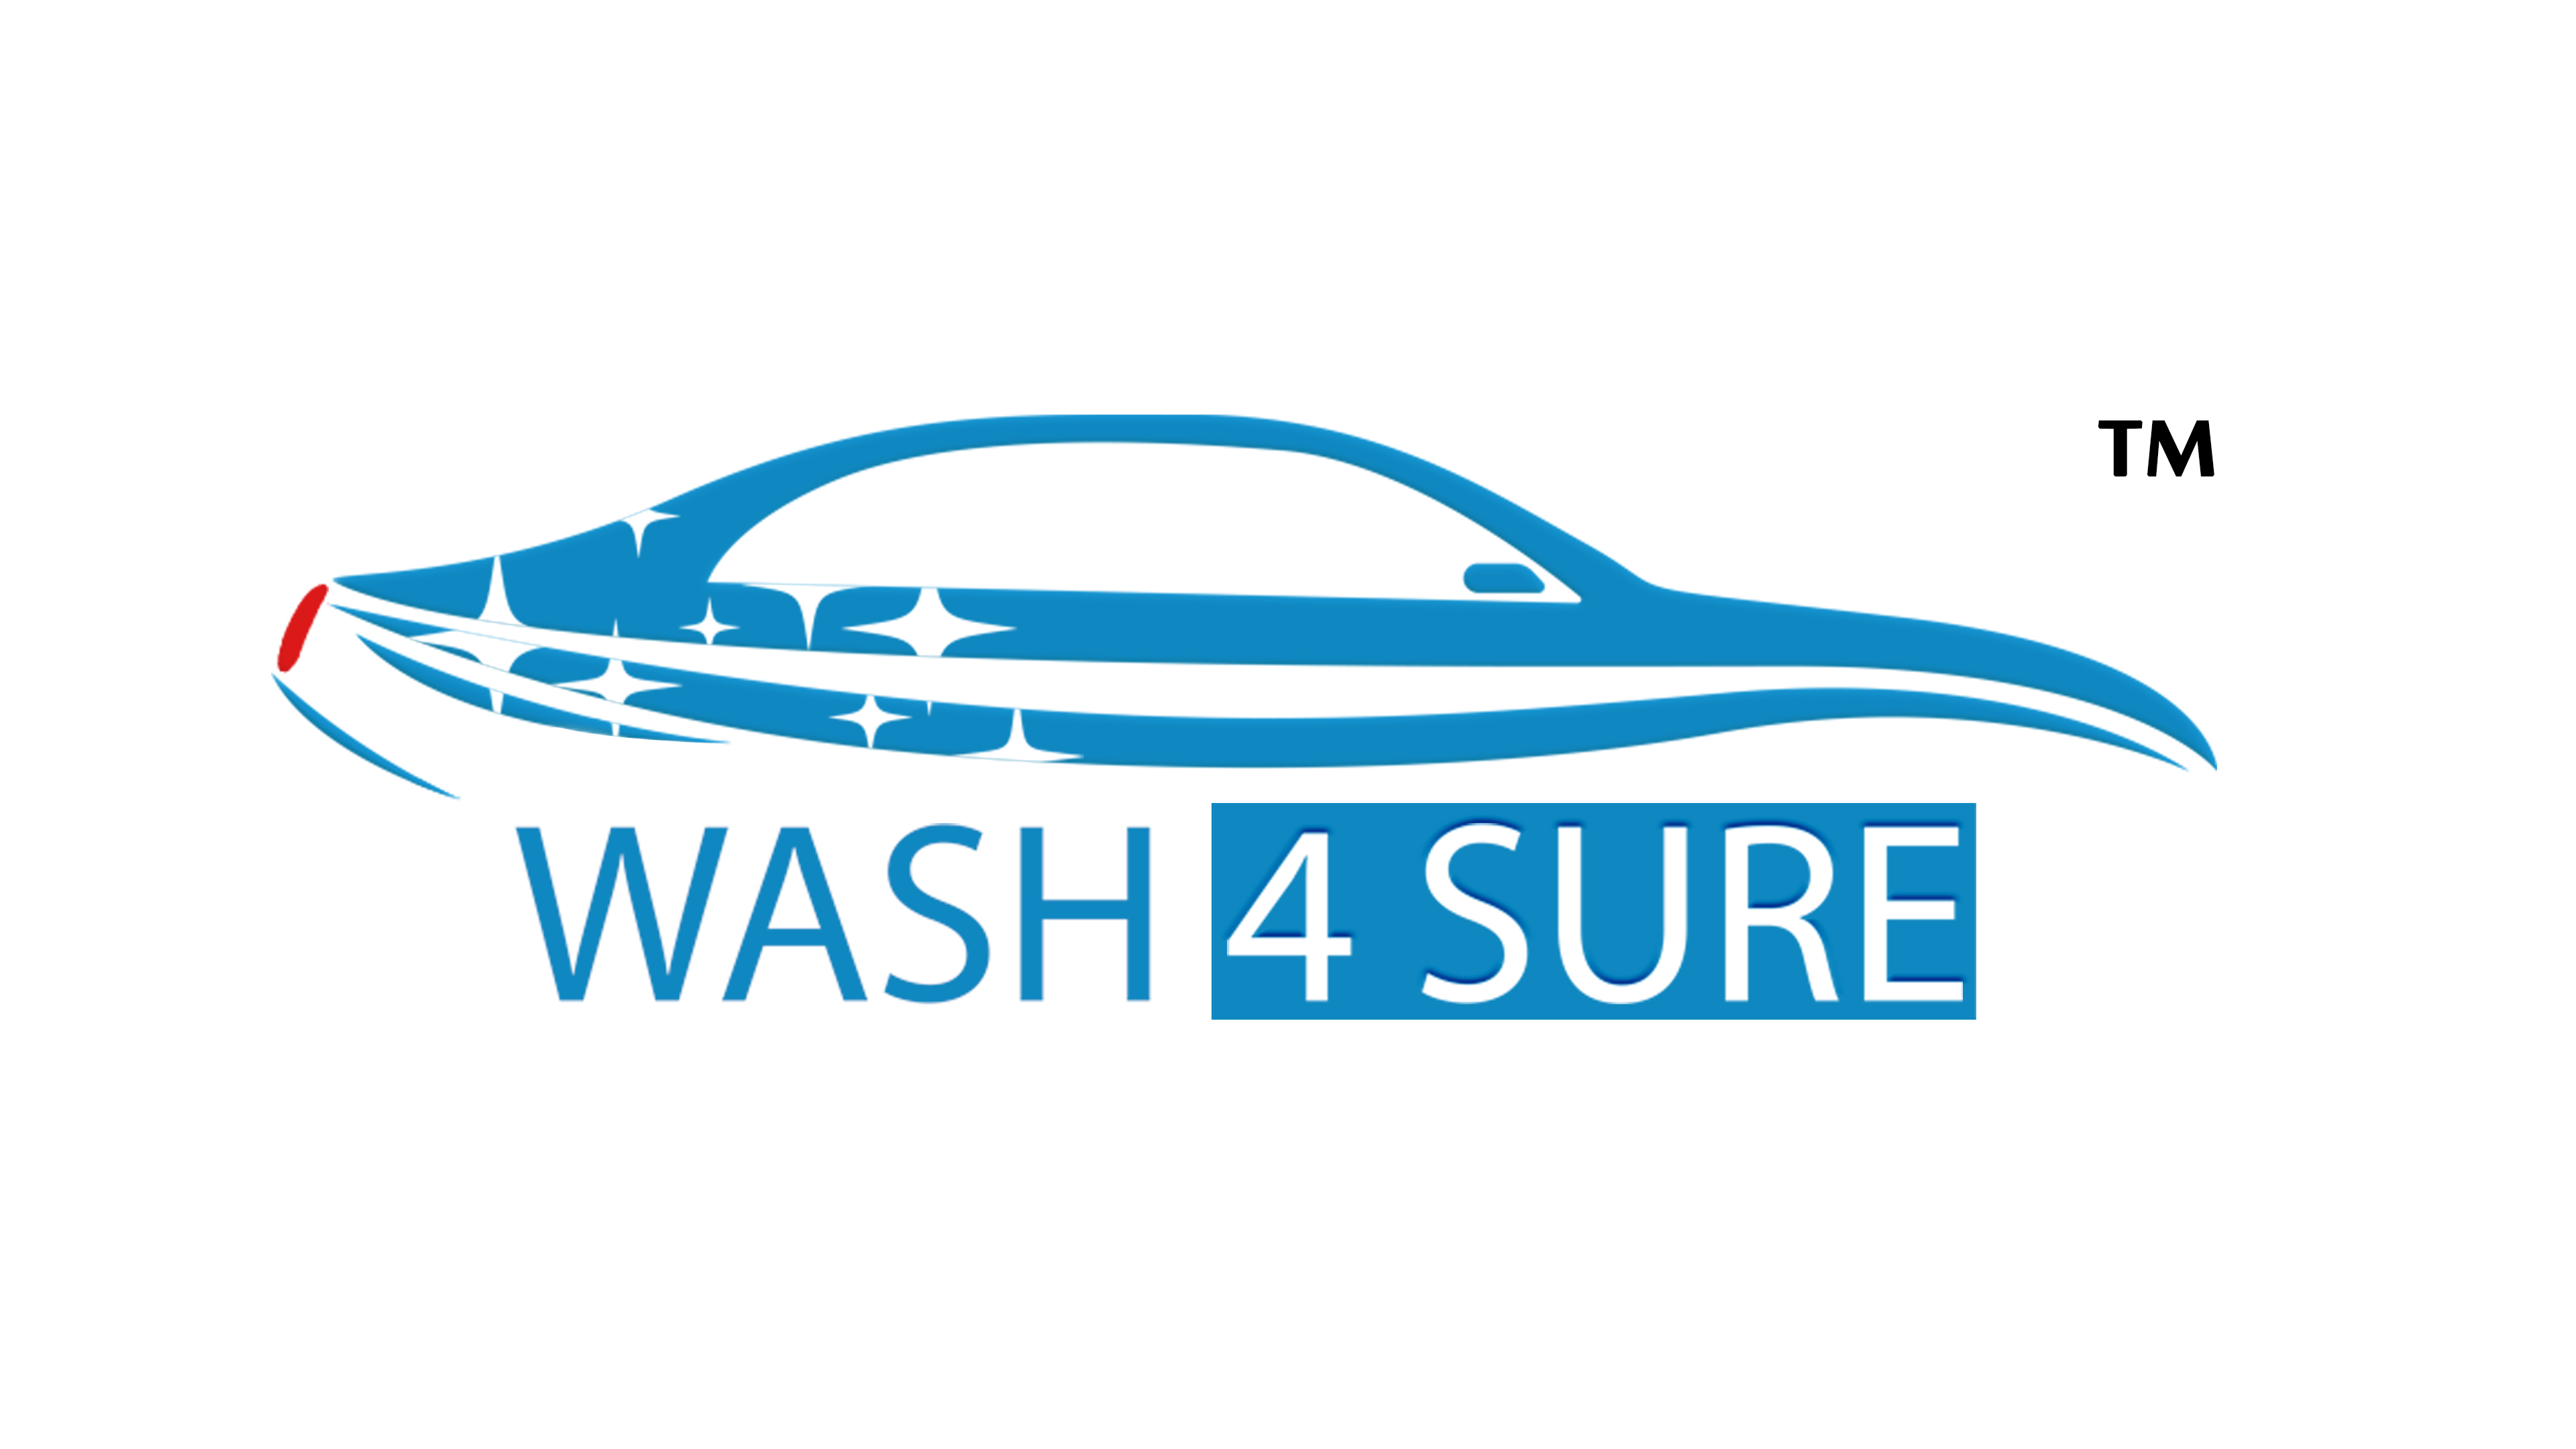 Wash4Sure logo